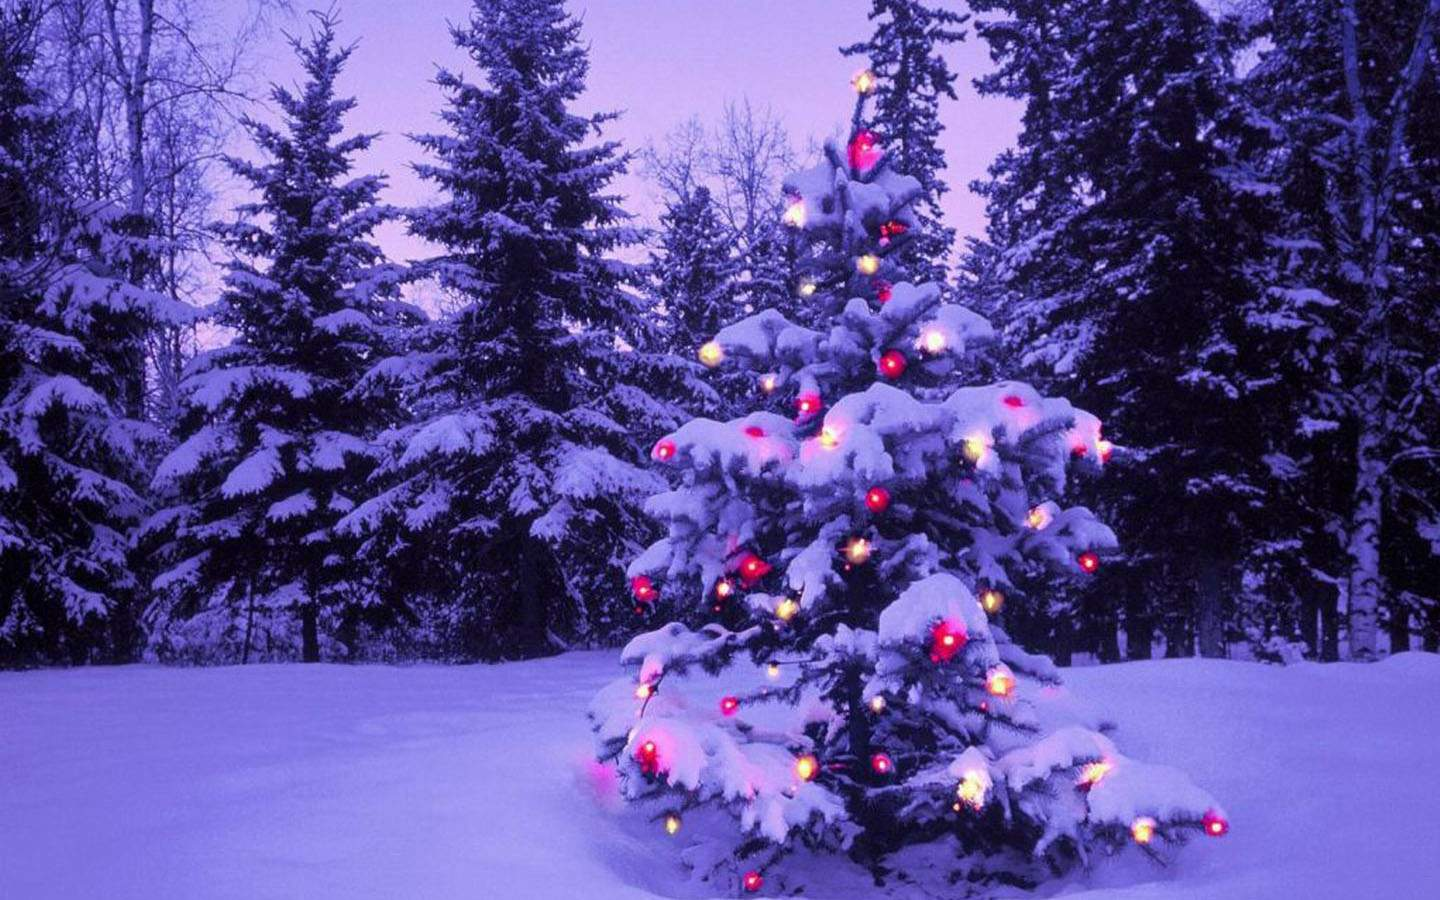 1440x900 best christmas desktop wallpaper Group with 65 items